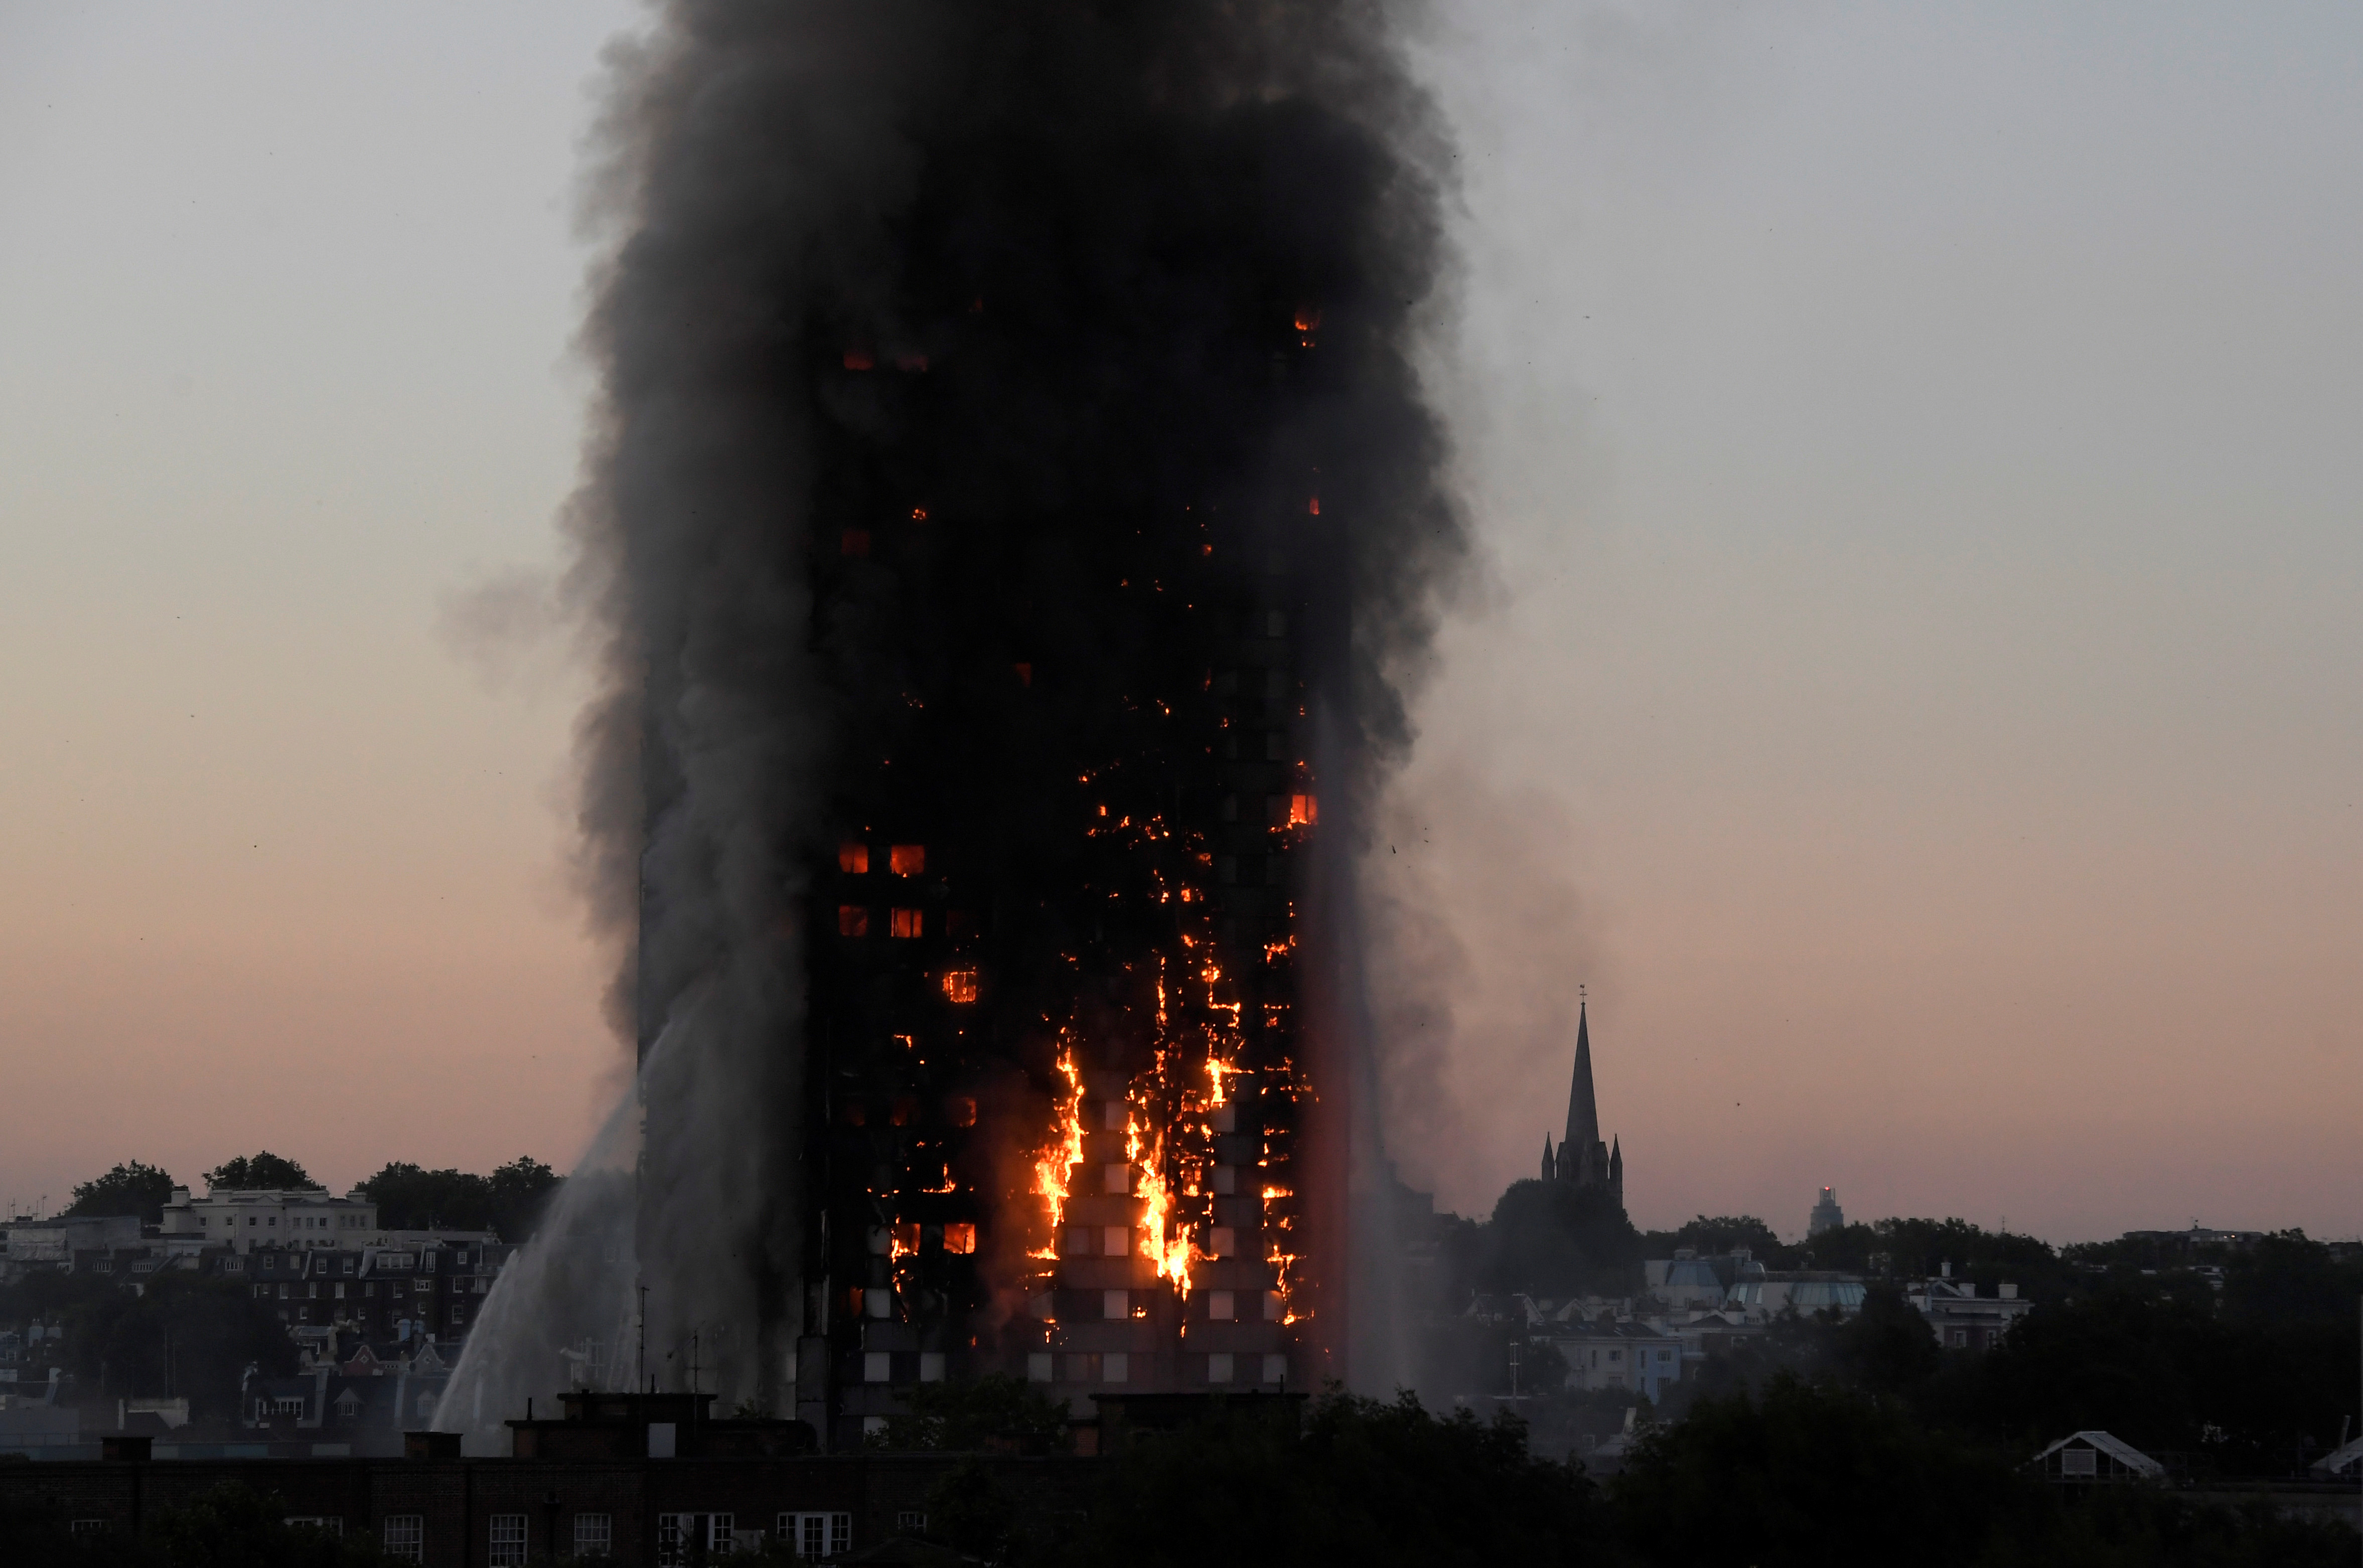 Flames and smoke billow as firefighters deal with a serious fire in the Grenfell Tower apartment block at Latimer Road in West London, Britain June 14, 2017. REUTERS/Toby Melville